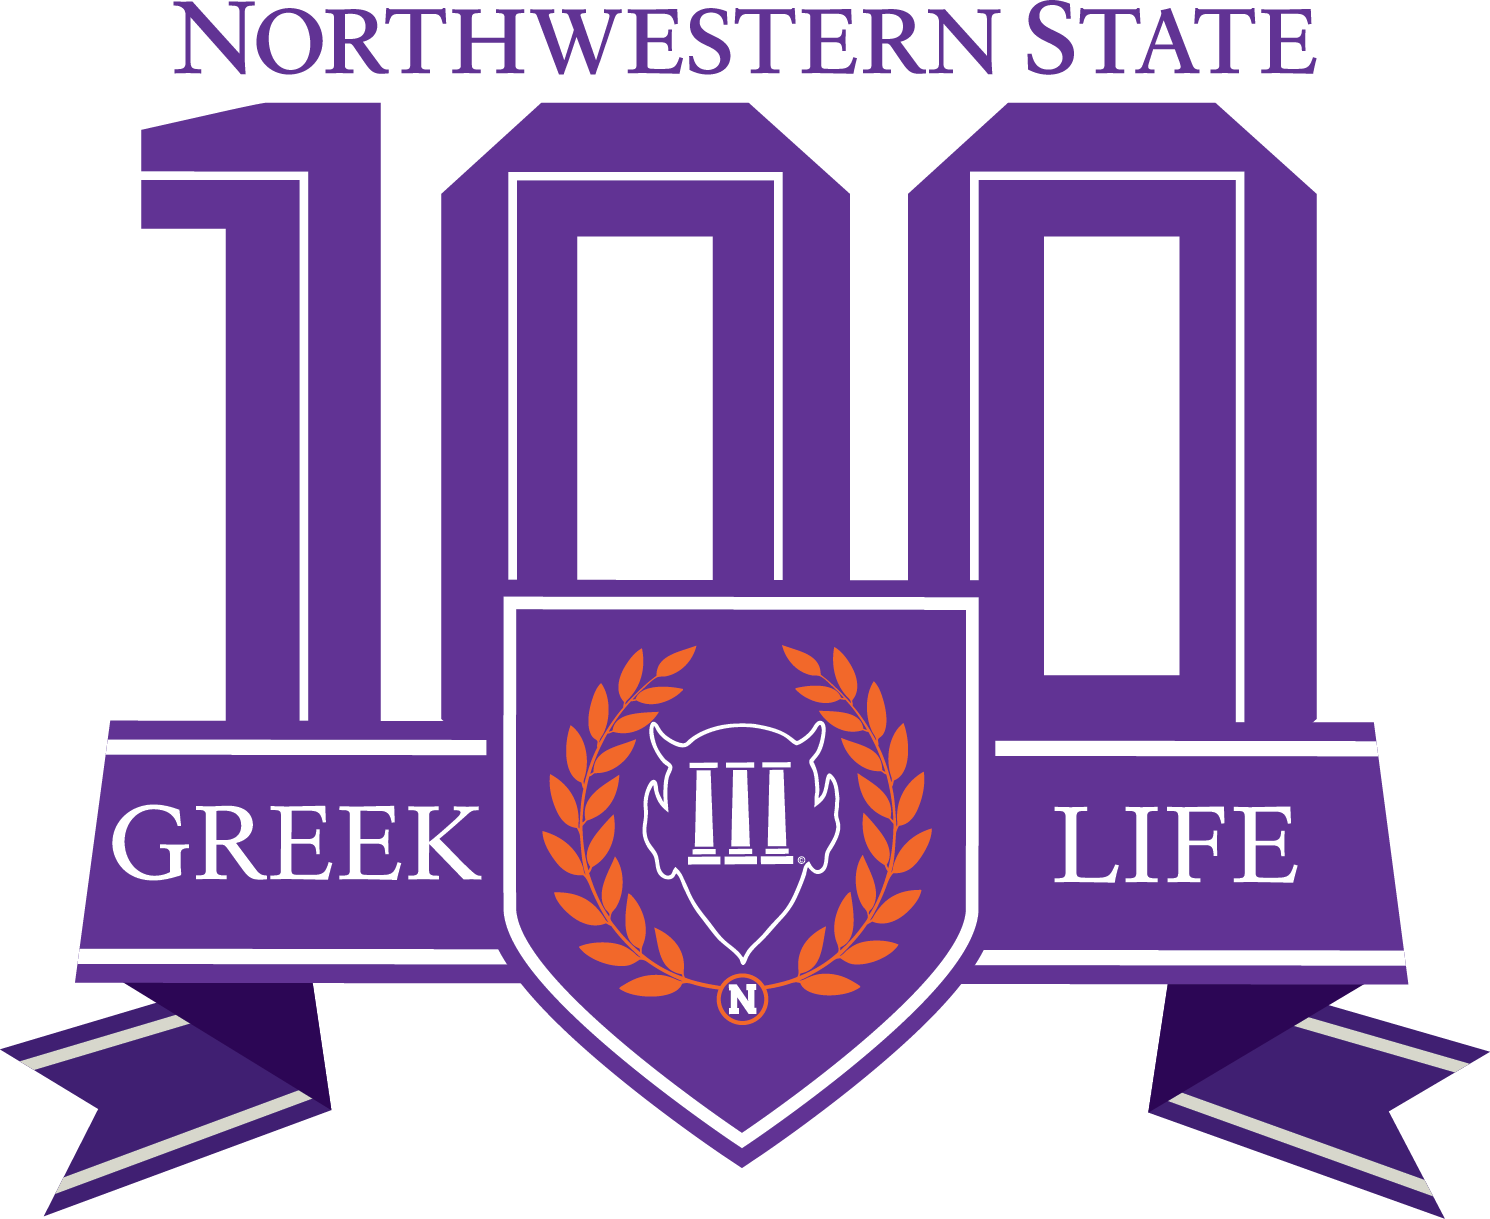 Northwestern State Greek Life Centennial Celebration